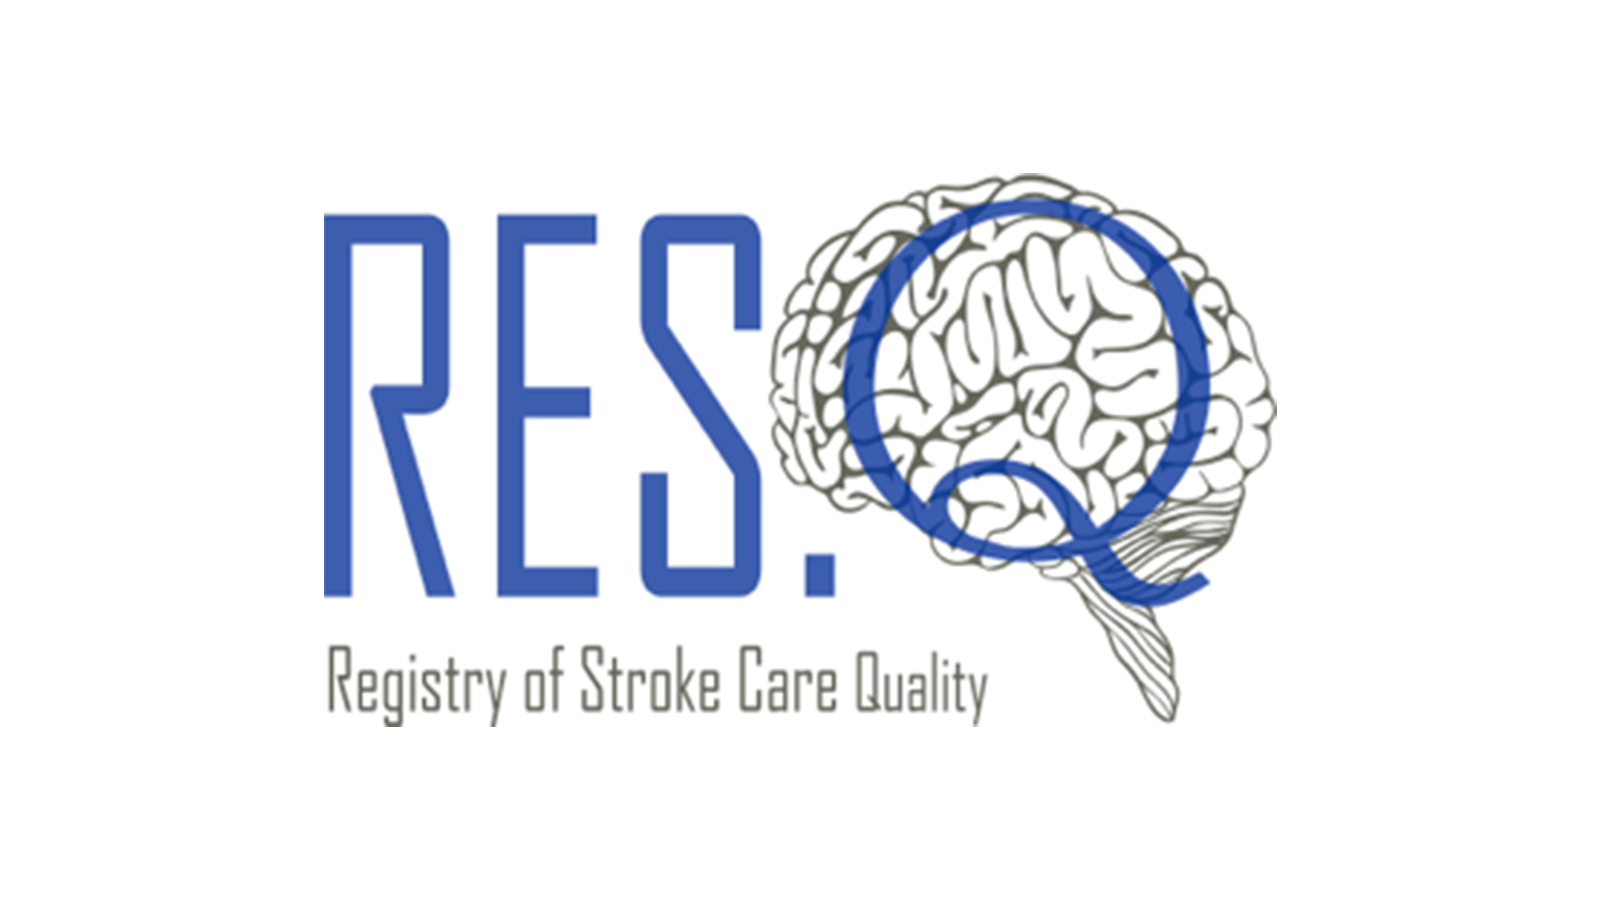 Registry of Stroke Care Quality